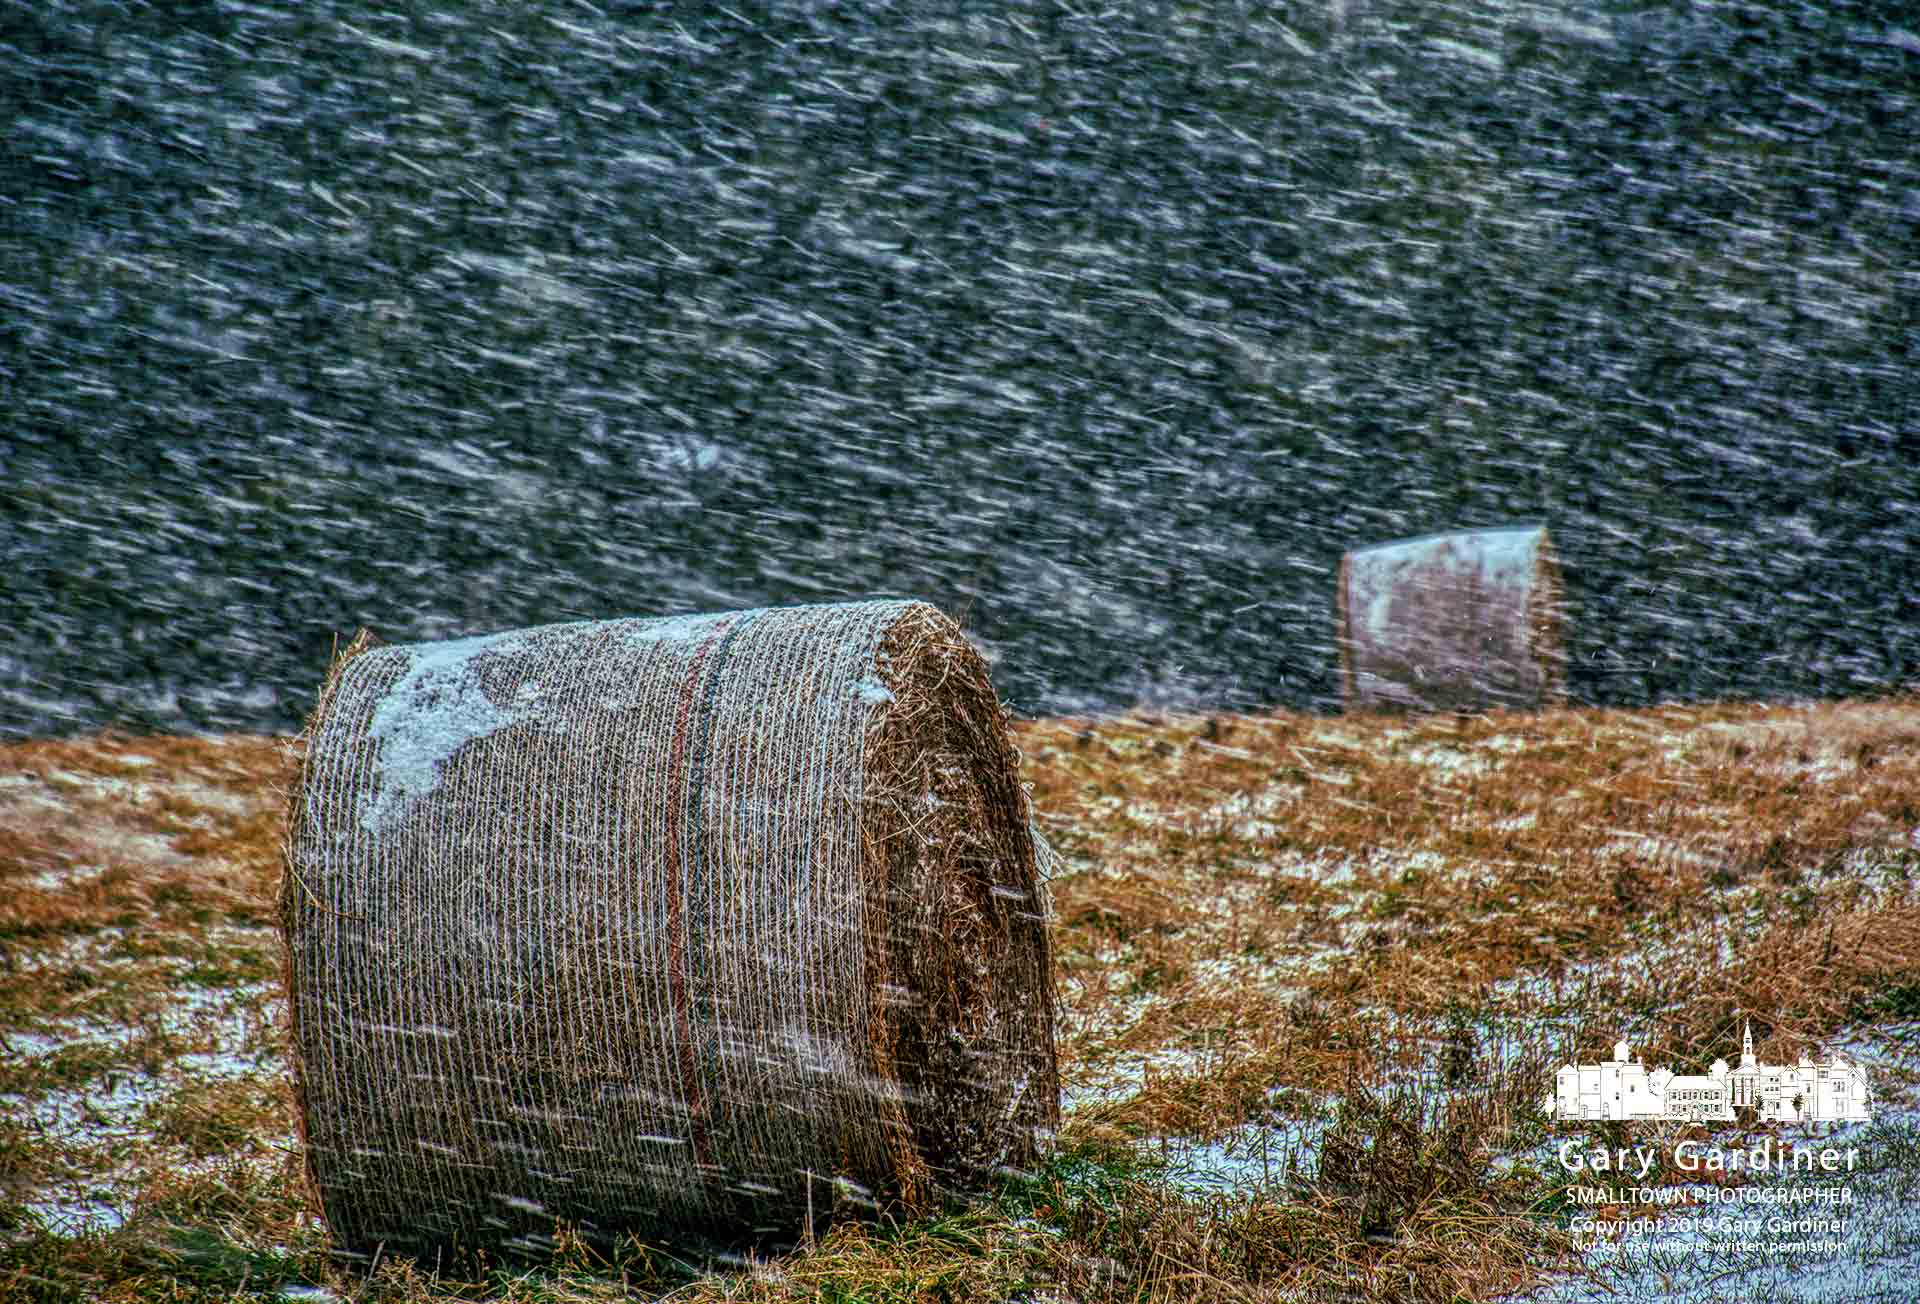 A morning snow squall blows heavy snow across bales of hay on a farm field on North West Street in Westerville Thursday. My Final Photo for Jan. 10, 2019.